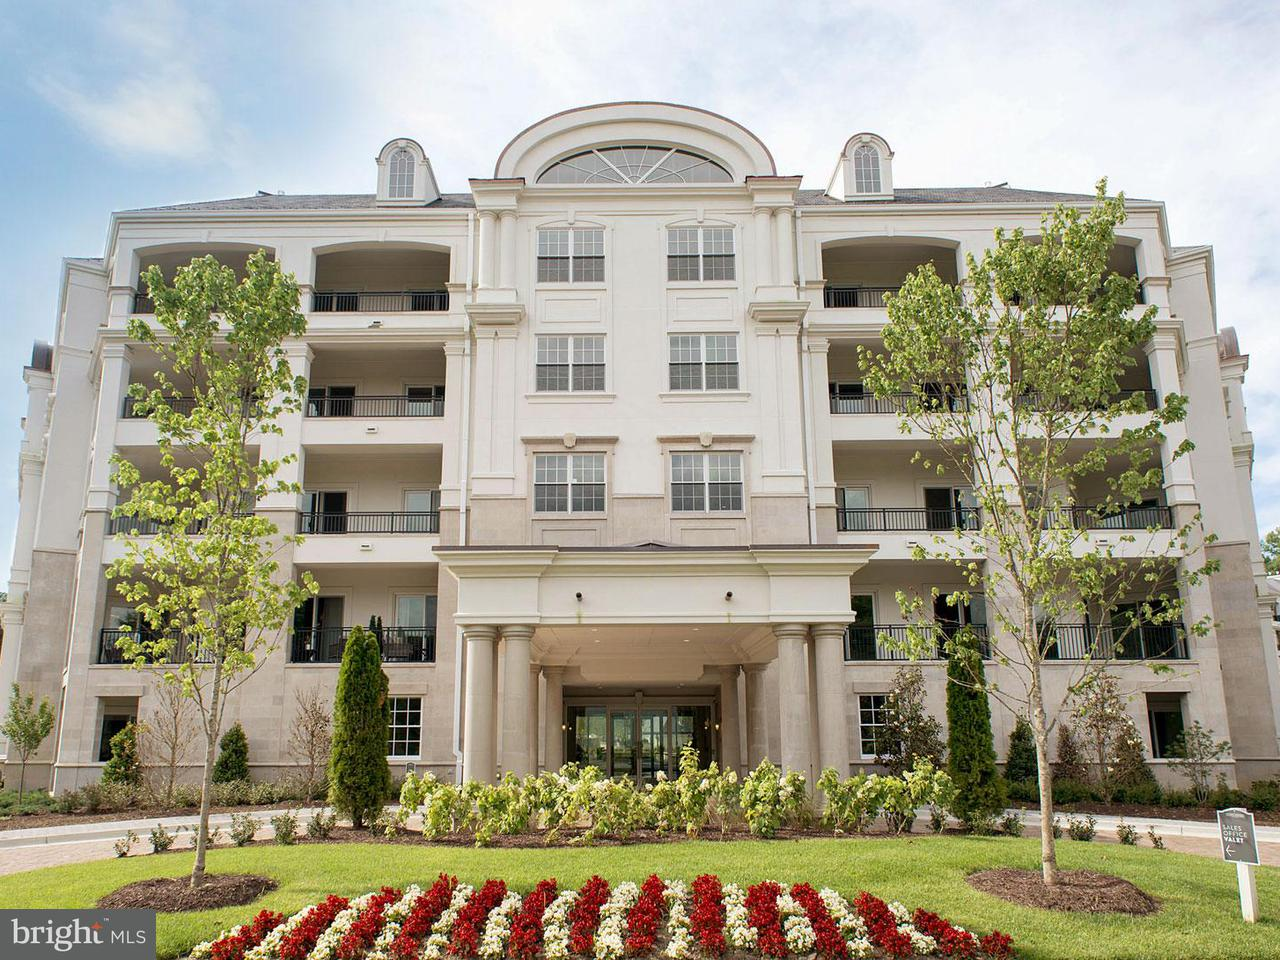 Condominium for Sale at 8111 River Rd #124 8111 River Rd #124 Bethesda, Maryland 20817 United States